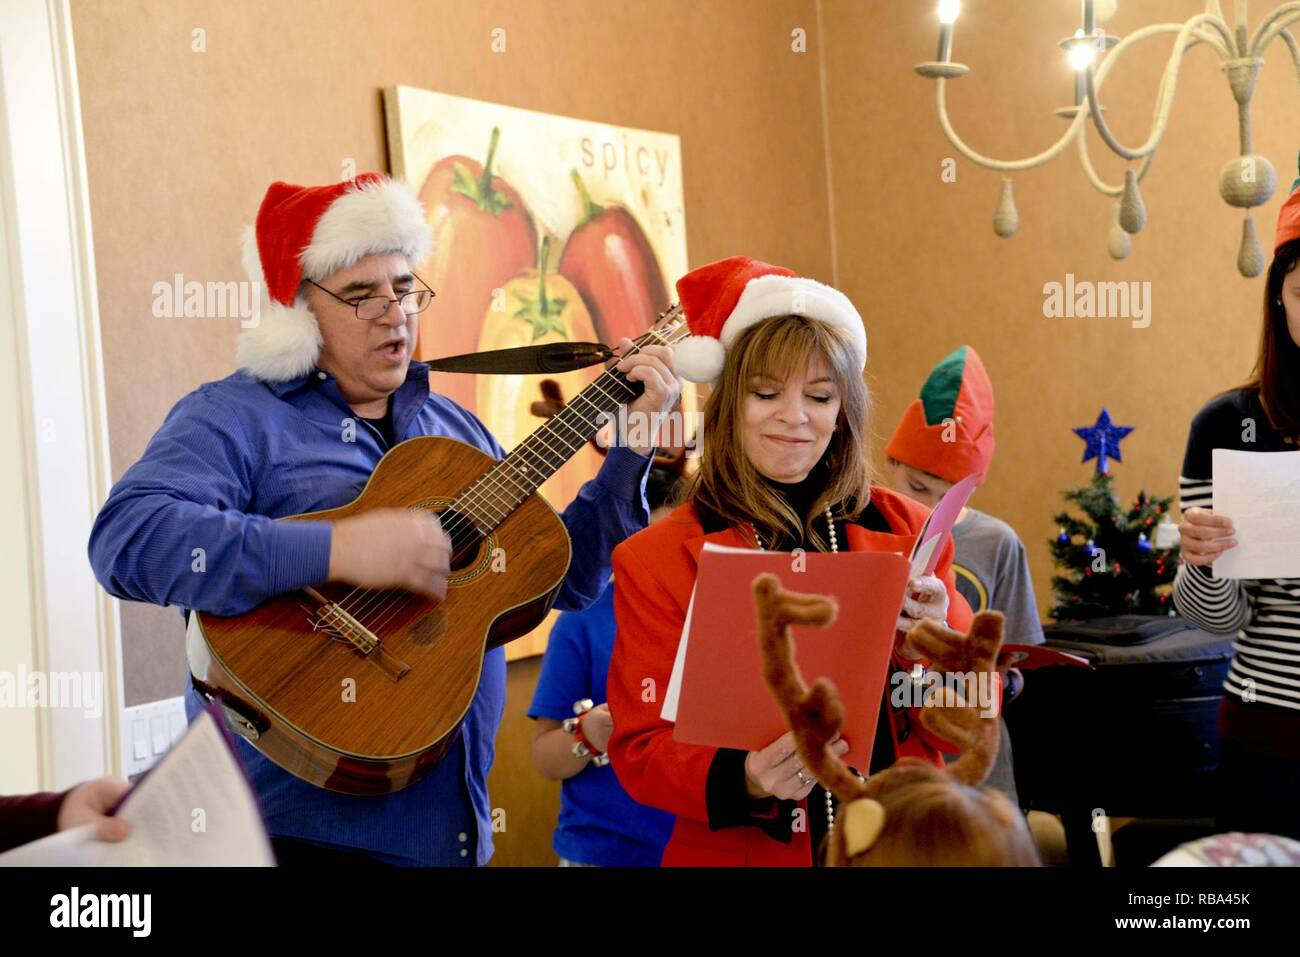 Delia Colvin, Army veteran and international bestselling author, and friend Steven Gary, guitarist and vocalist, perform Christmas carols for children and their families Dec. 20, 2016 at the Fisher House, Travis Air Force Base, Calif. The Travis Fisher Houses are part of a collection of homes built on military bases to provide a place for families in need to stay without charge when a member is hospitalized. - Stock Image